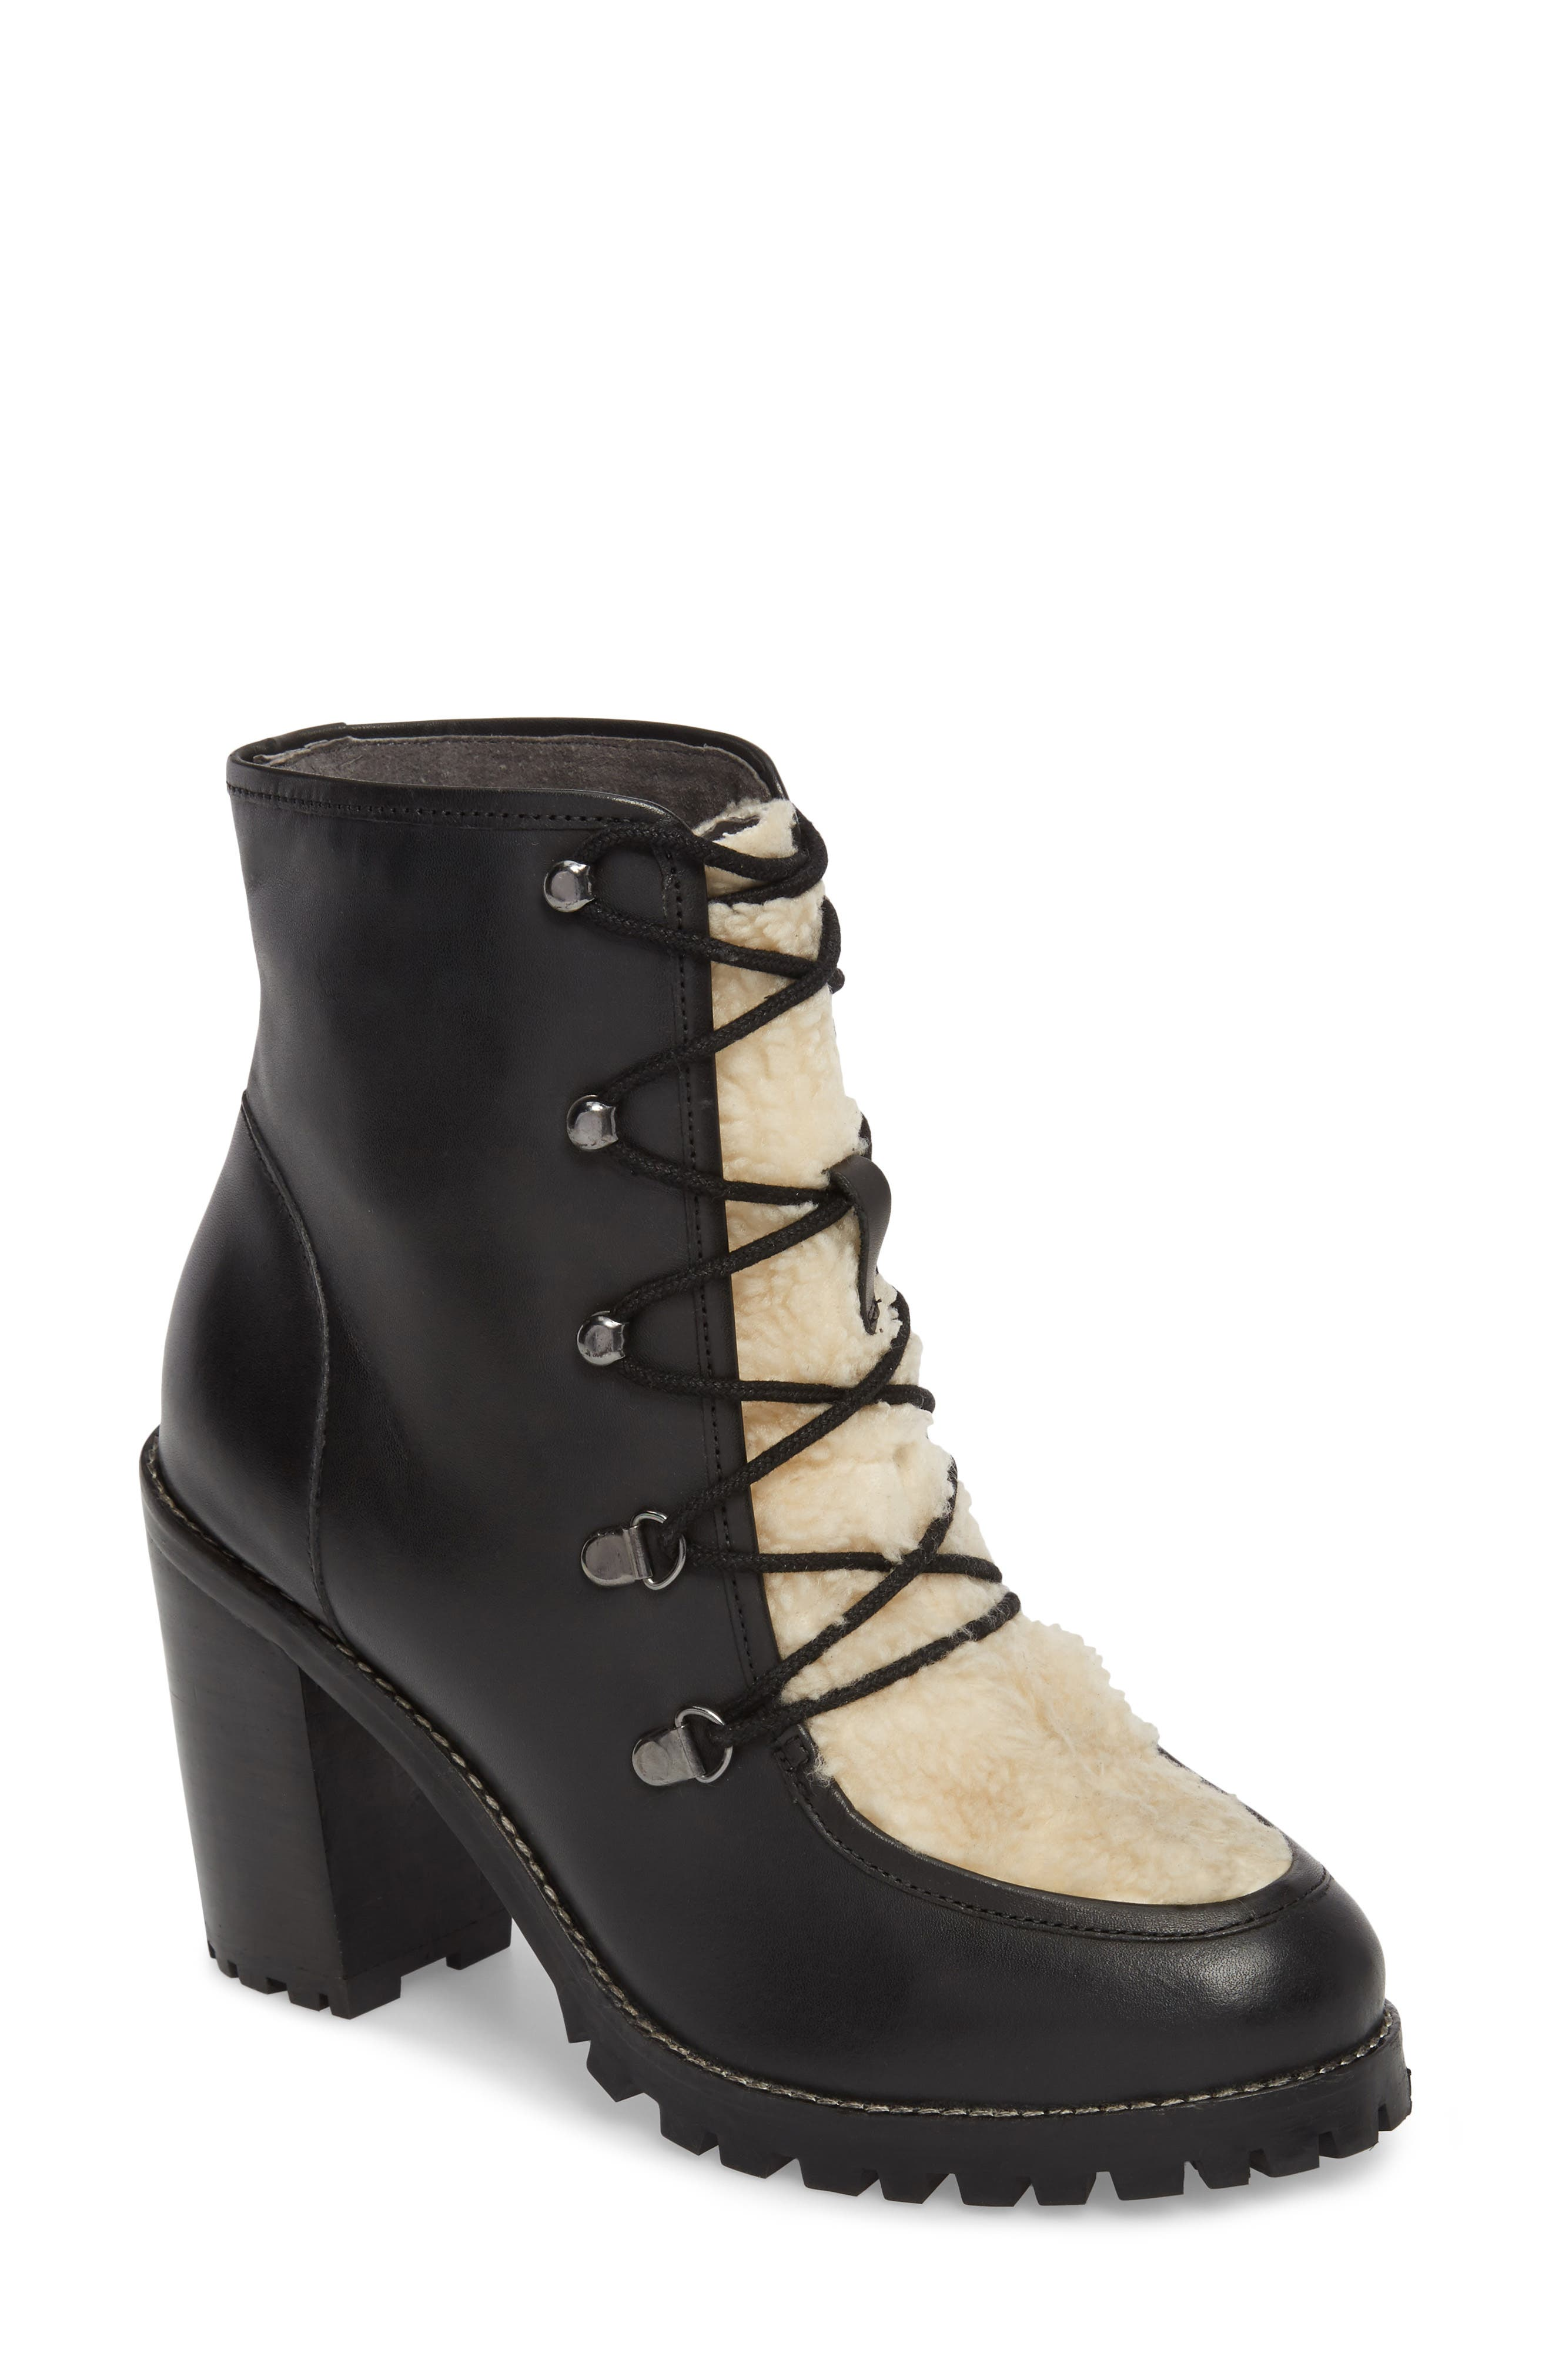 Theater Lace-Up Bootie,                         Main,                         color, Black Leather